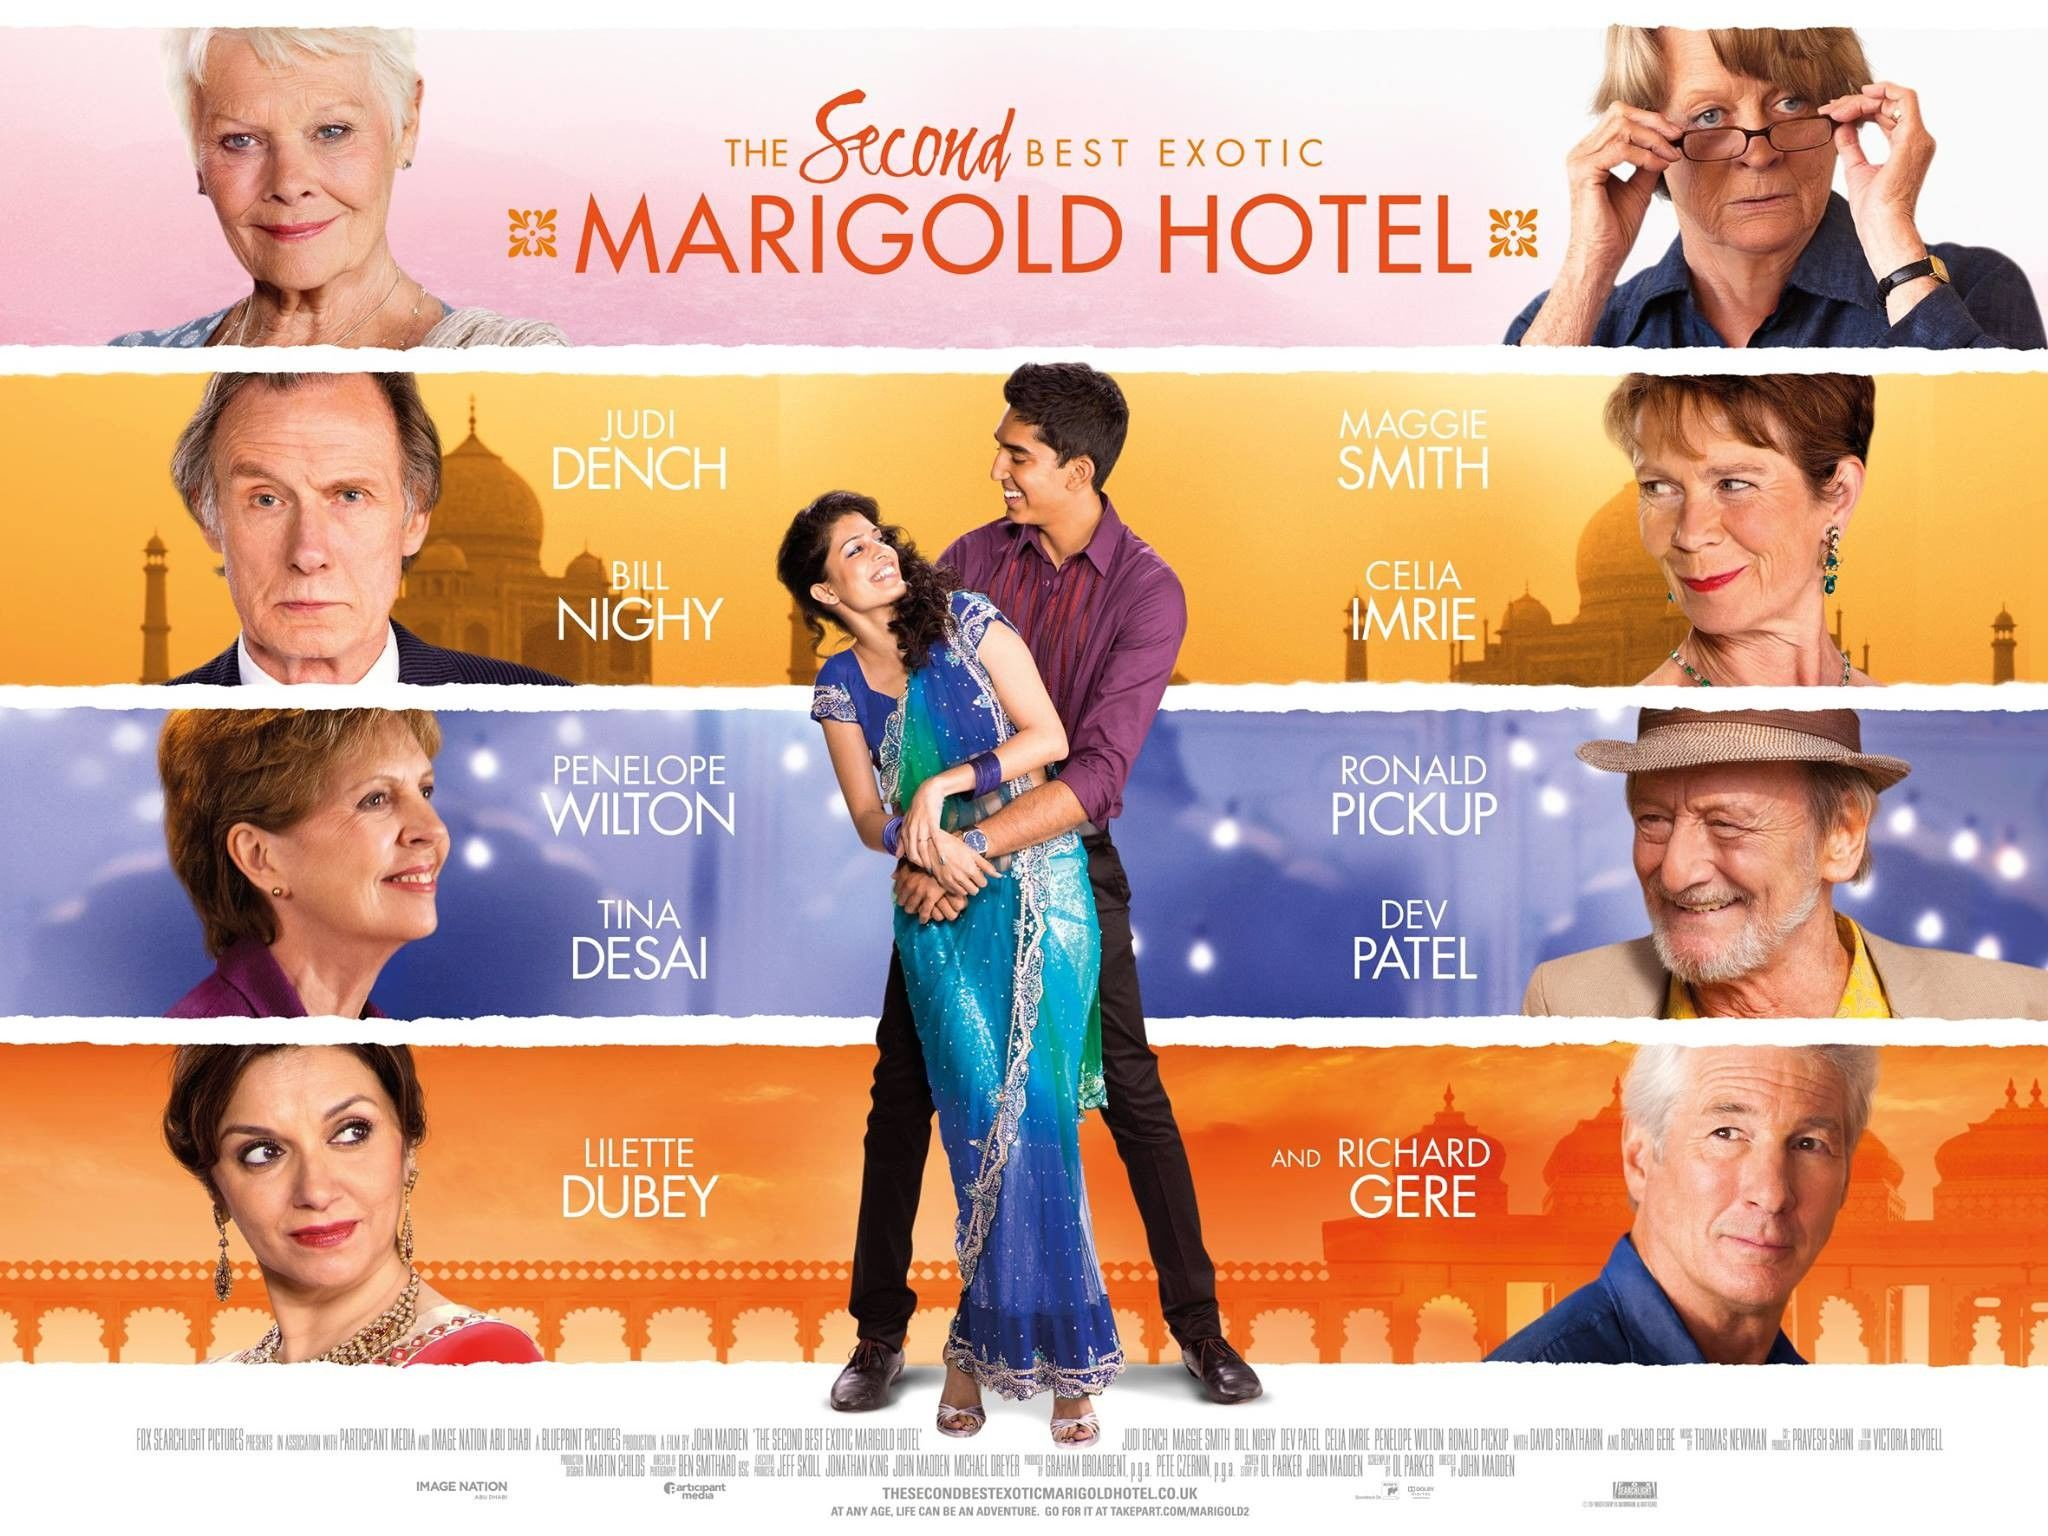 the most exotic marigold hotel